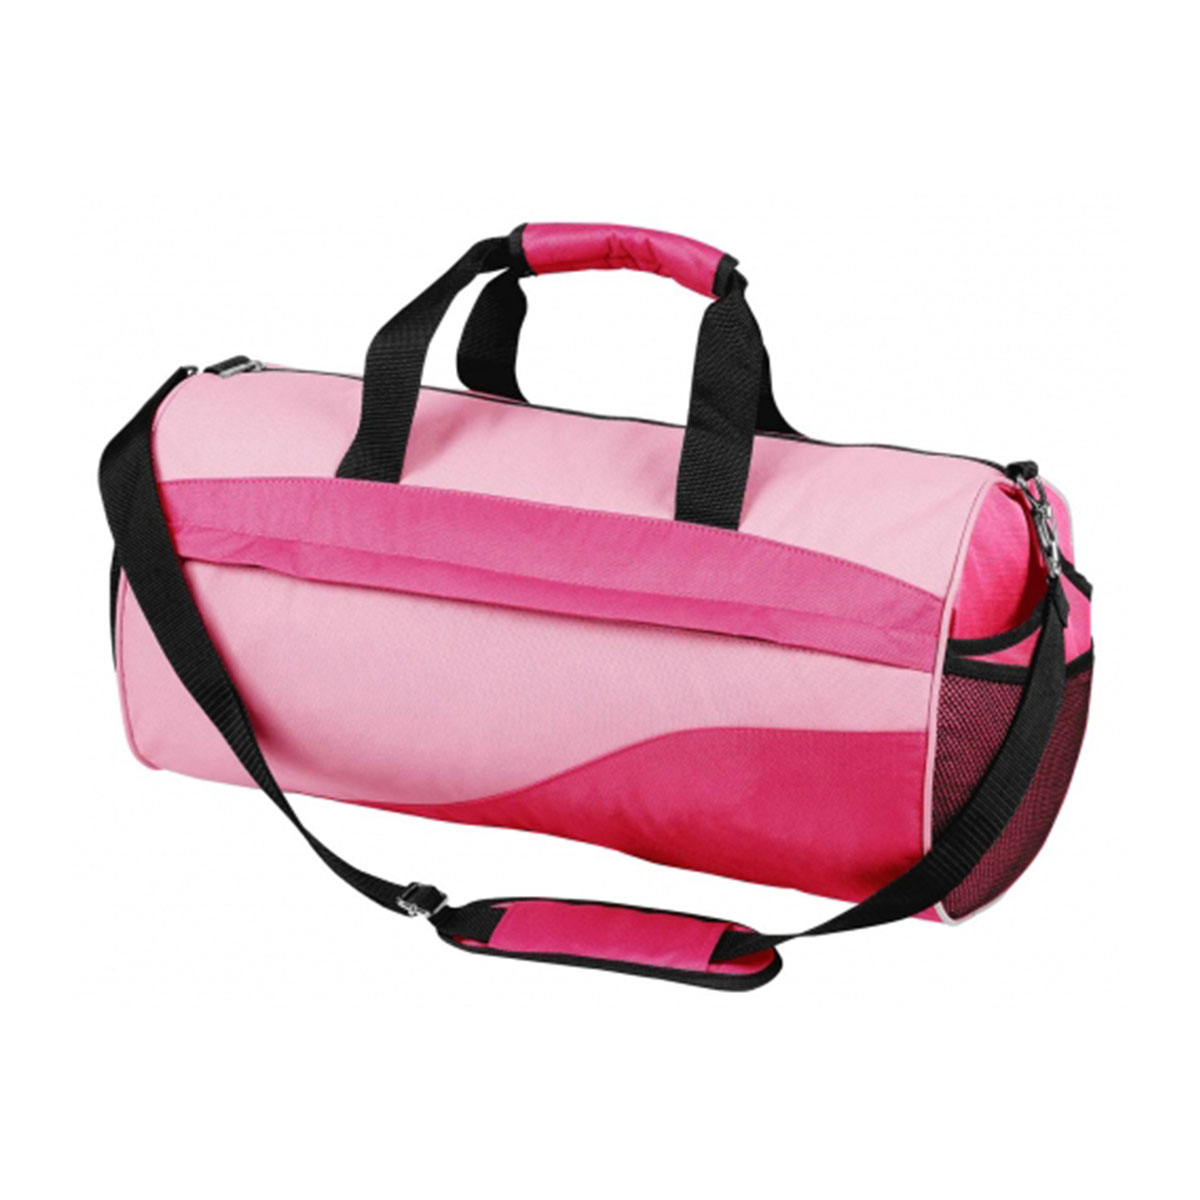 Roll Sports Bag-Pink / Hot Pink